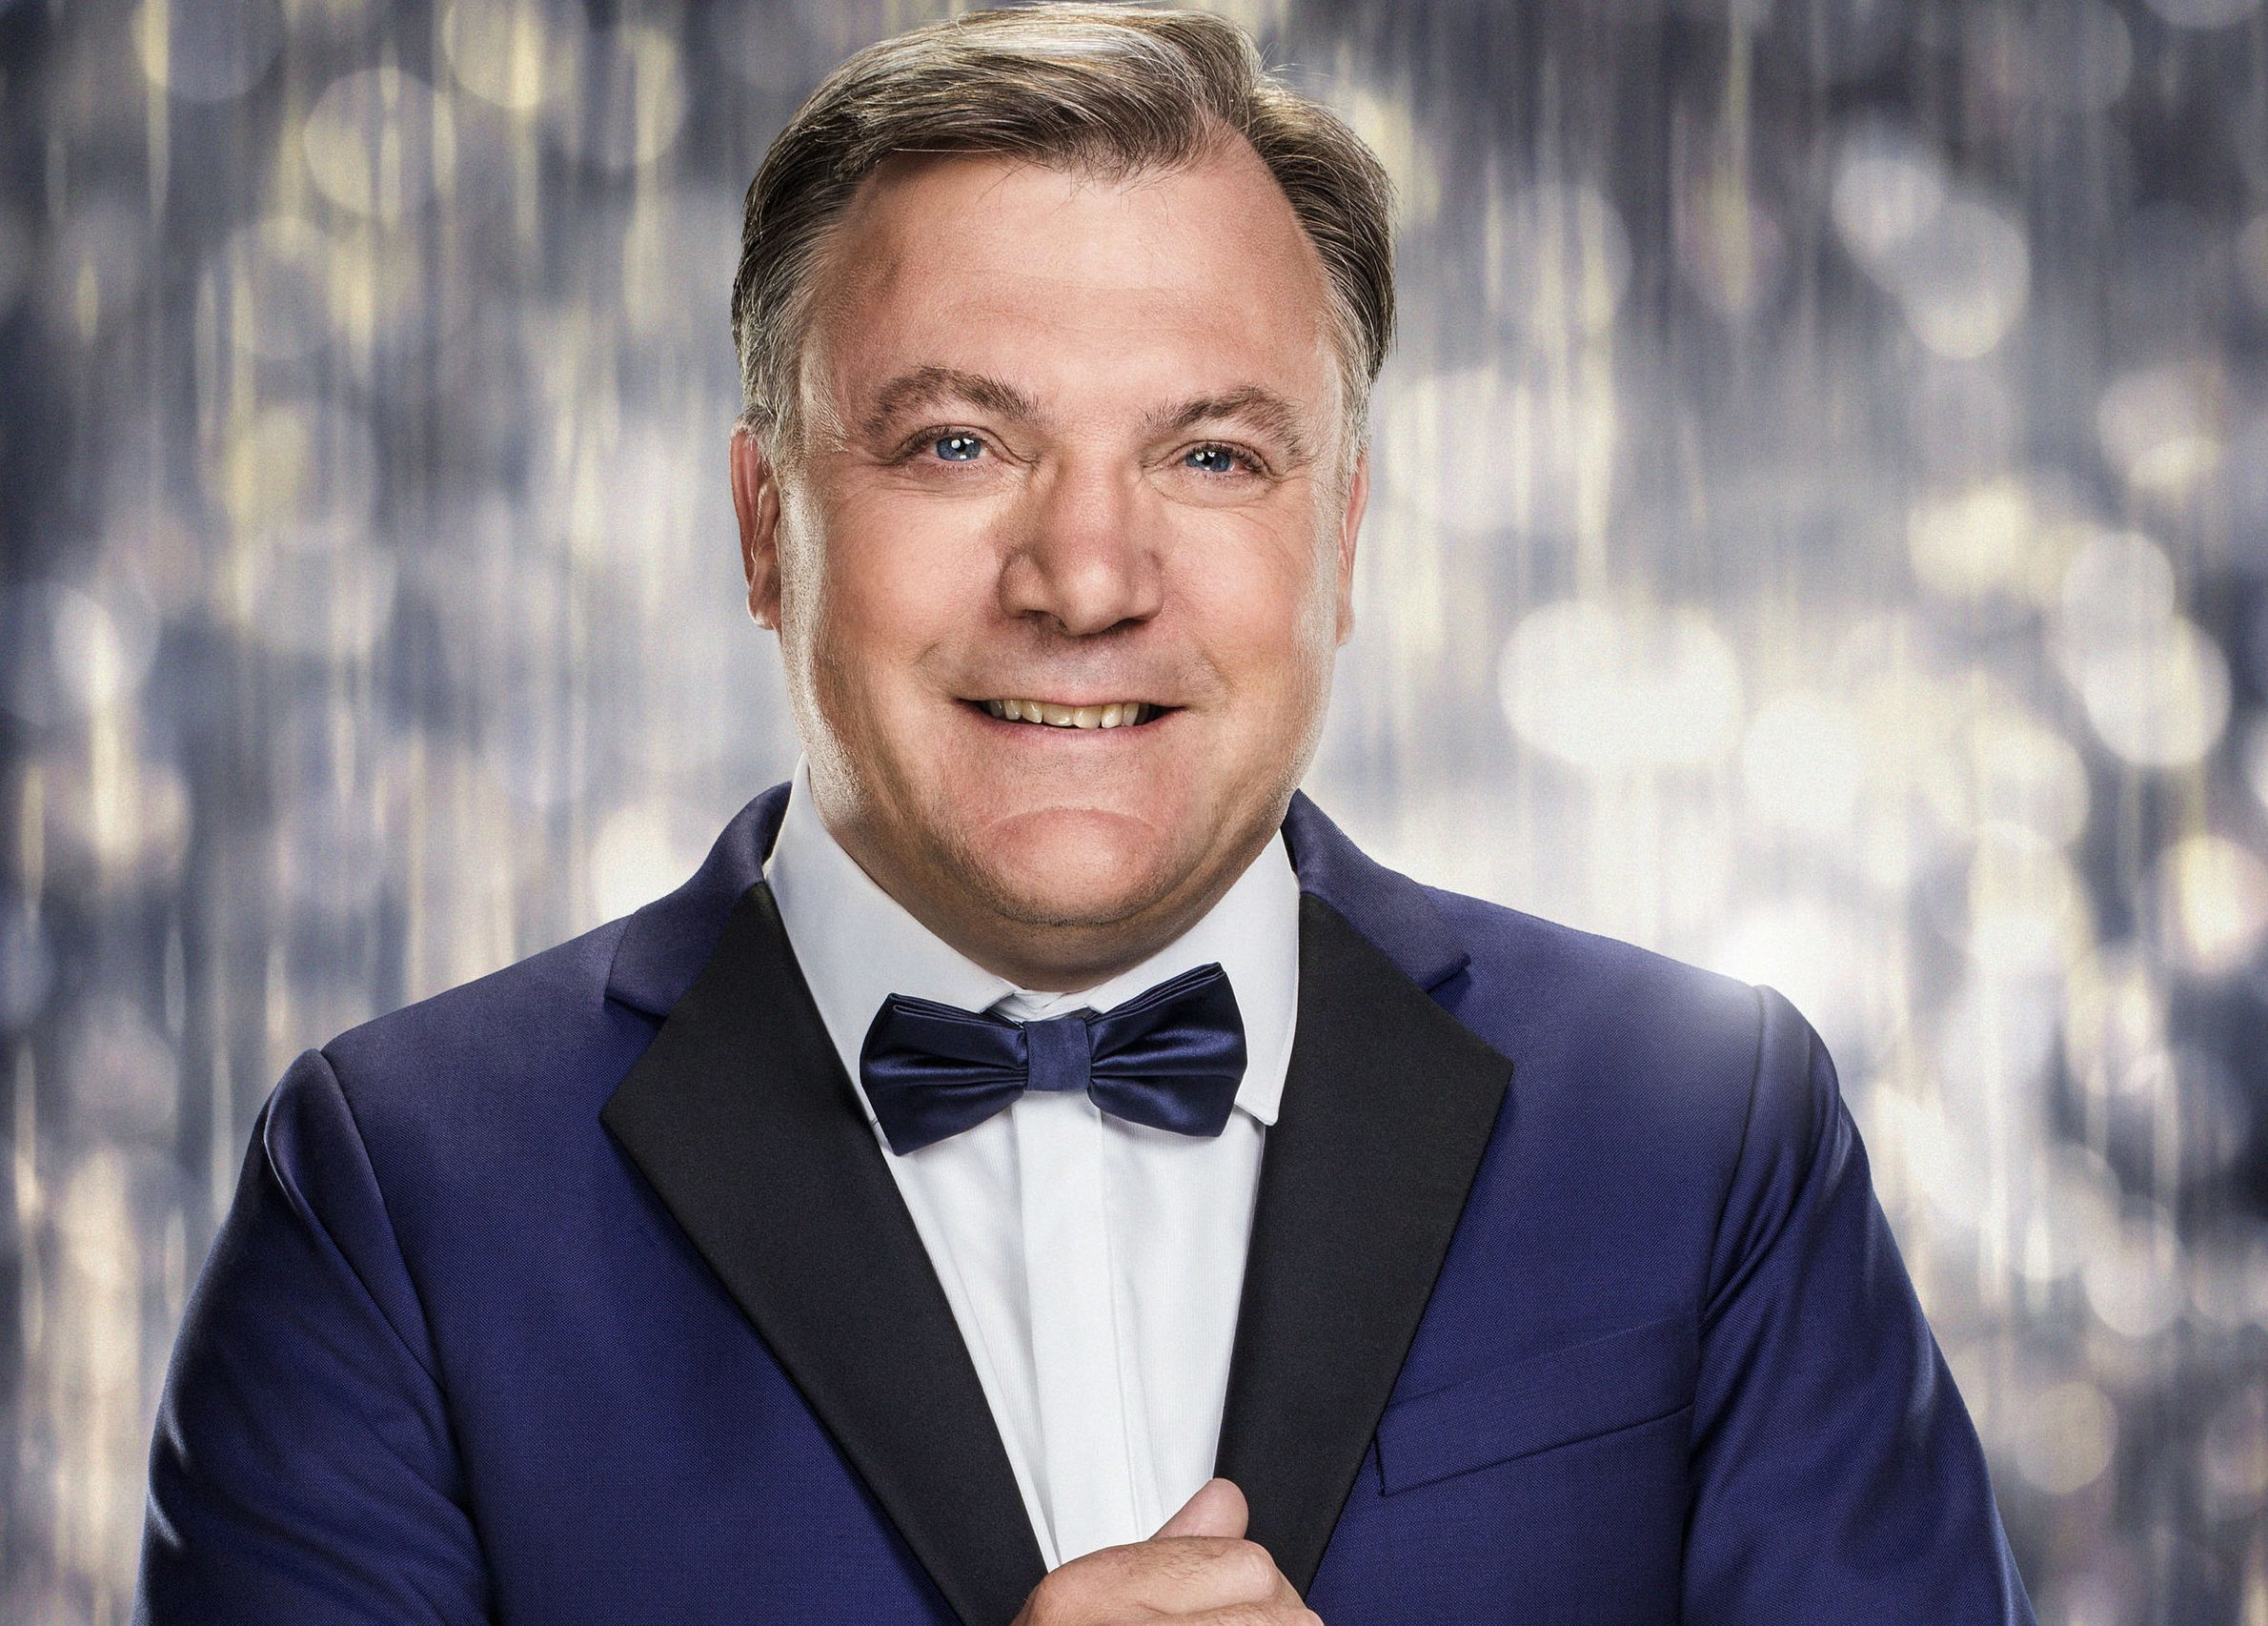 Former Shadow Chancellor-turned dance floor star Ed Balls